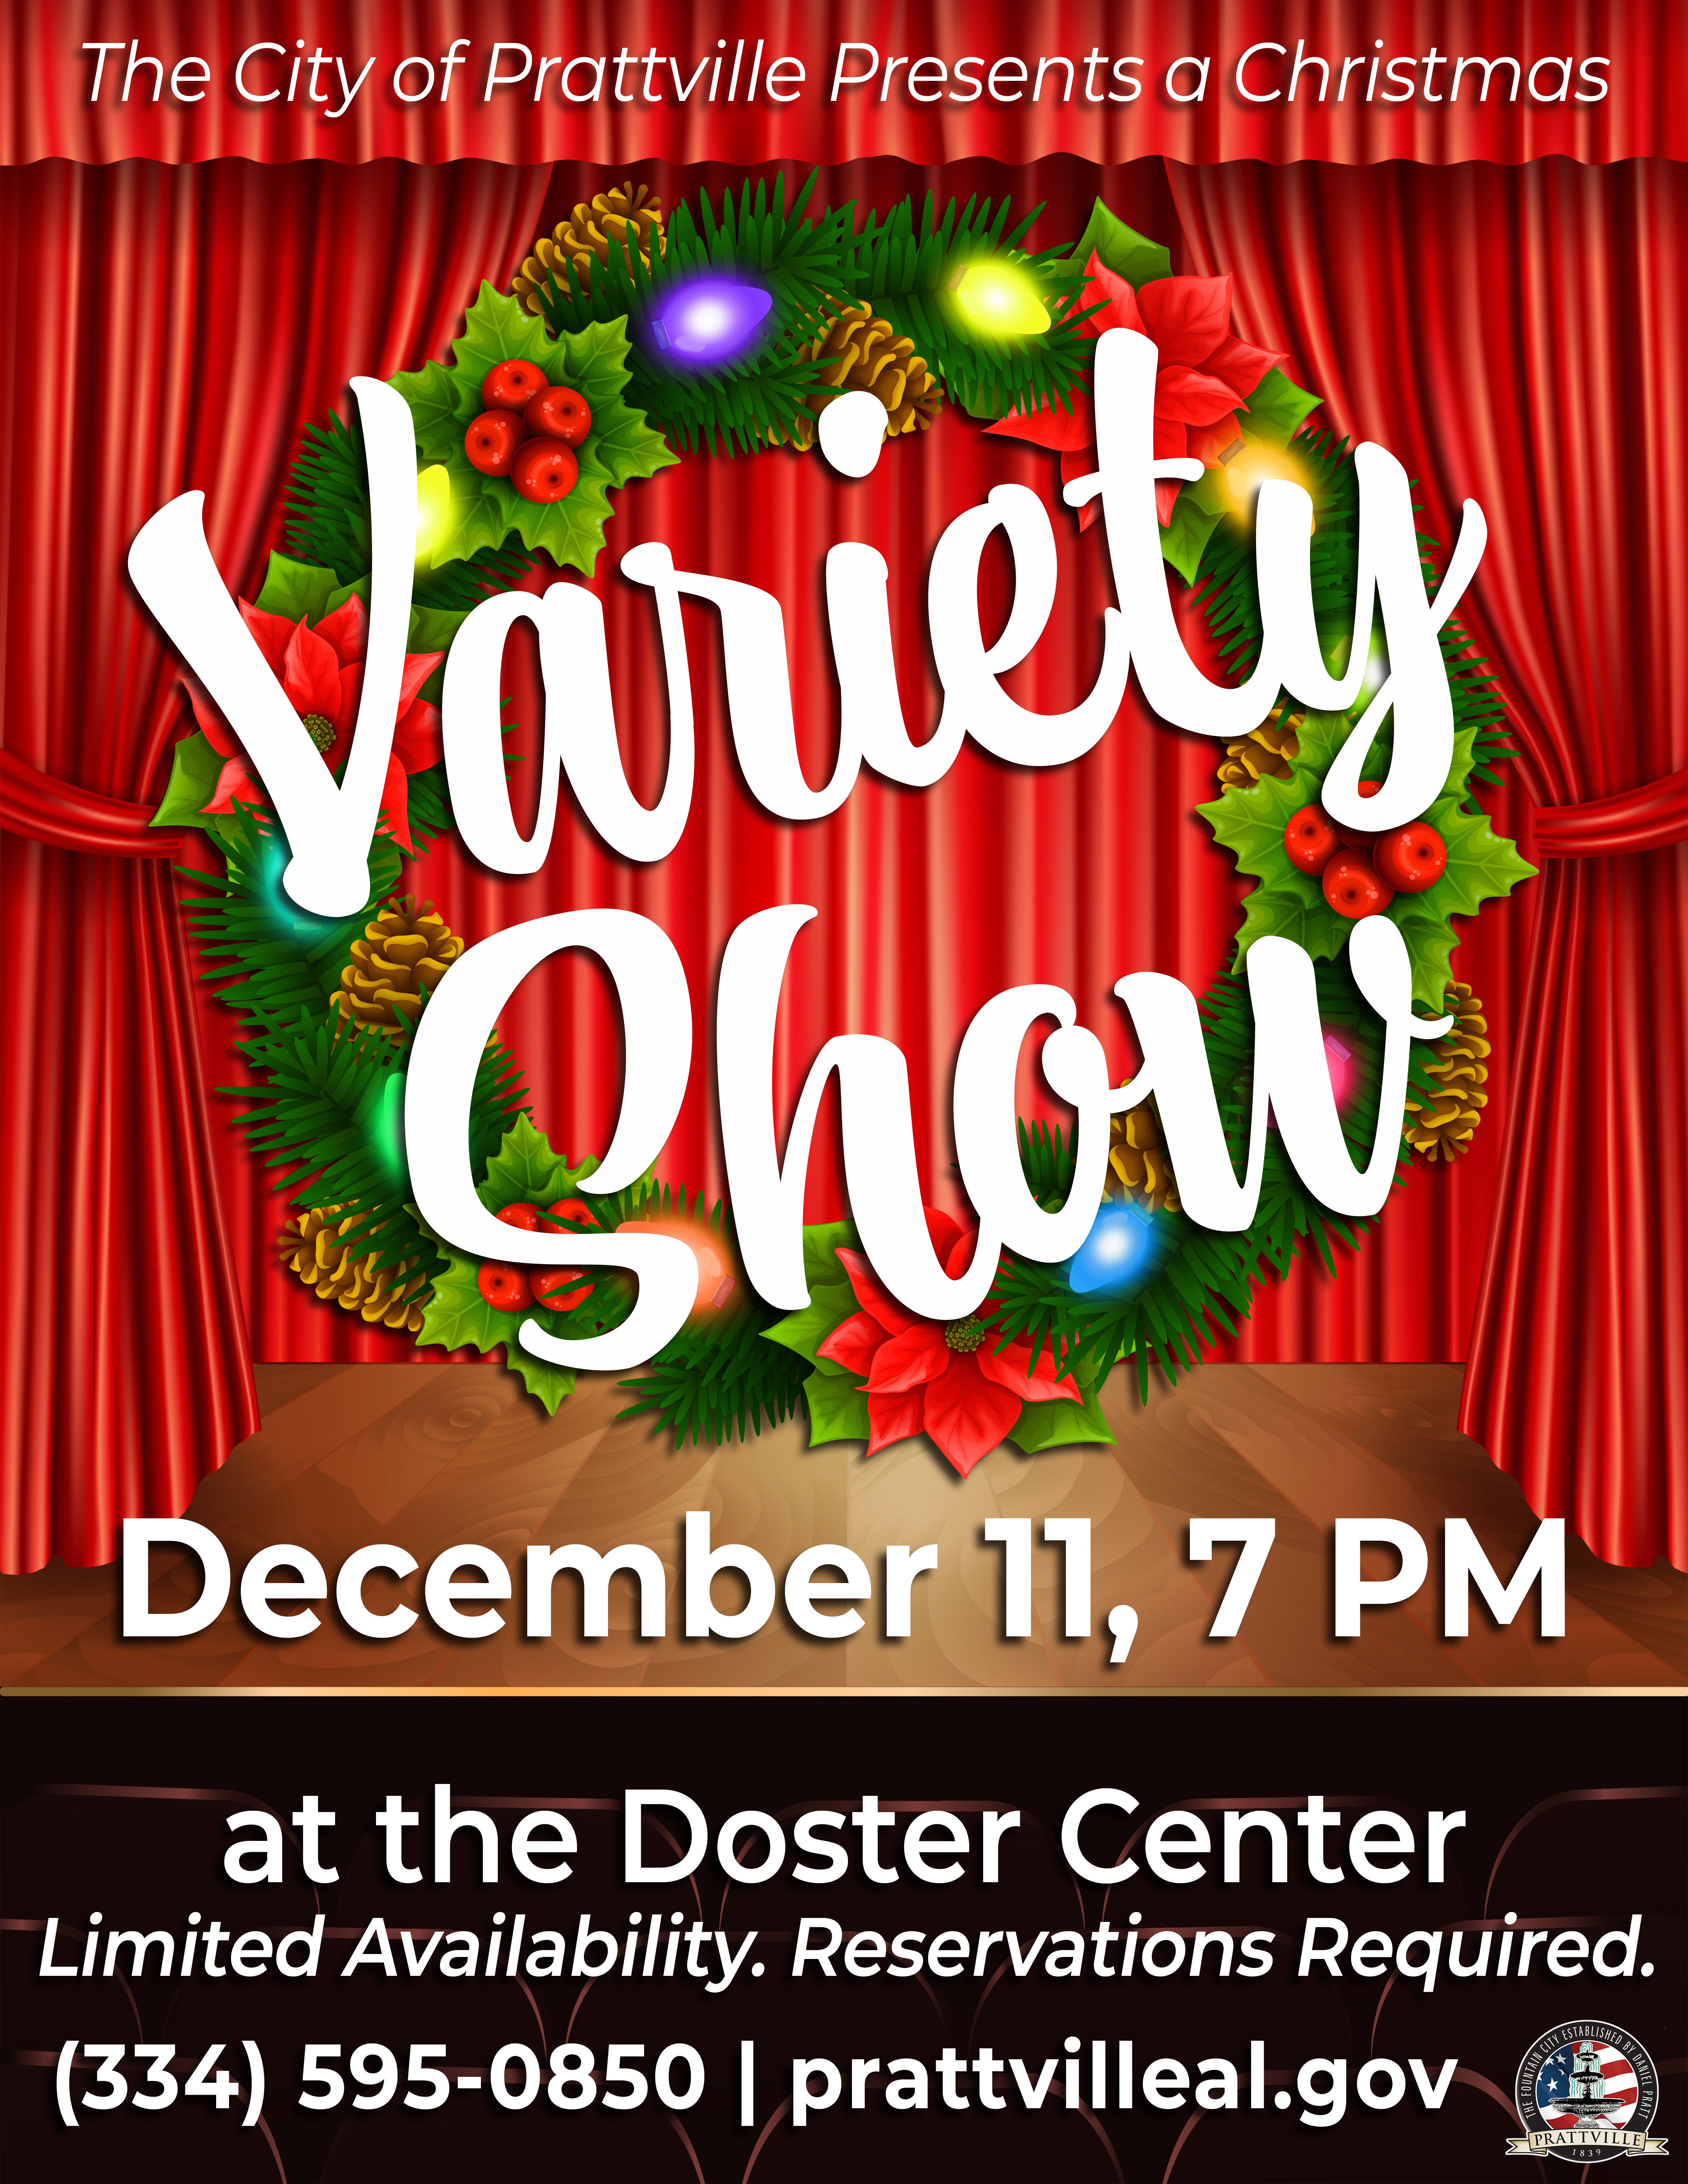 Prattville Christmas 2020 Local talents to star in Prattville's Christmas Variety Show on